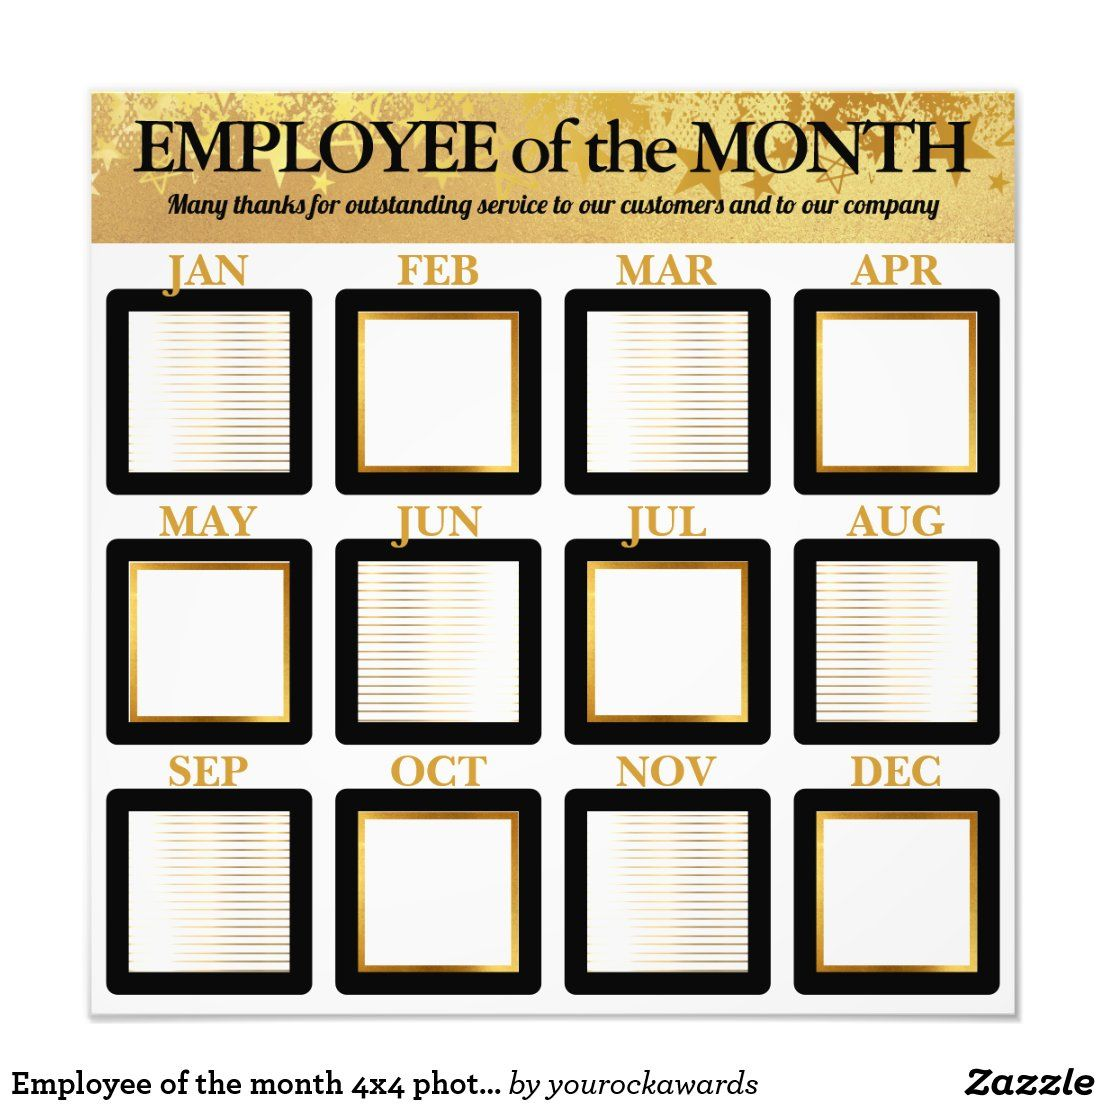 Employee Of The Month 4x4 Photos Office Display Photo Print Zazzle Com In 2021 Work Bulletin Boards Office Bulletin Board Ideas Staff Motivation Employee of the month photo